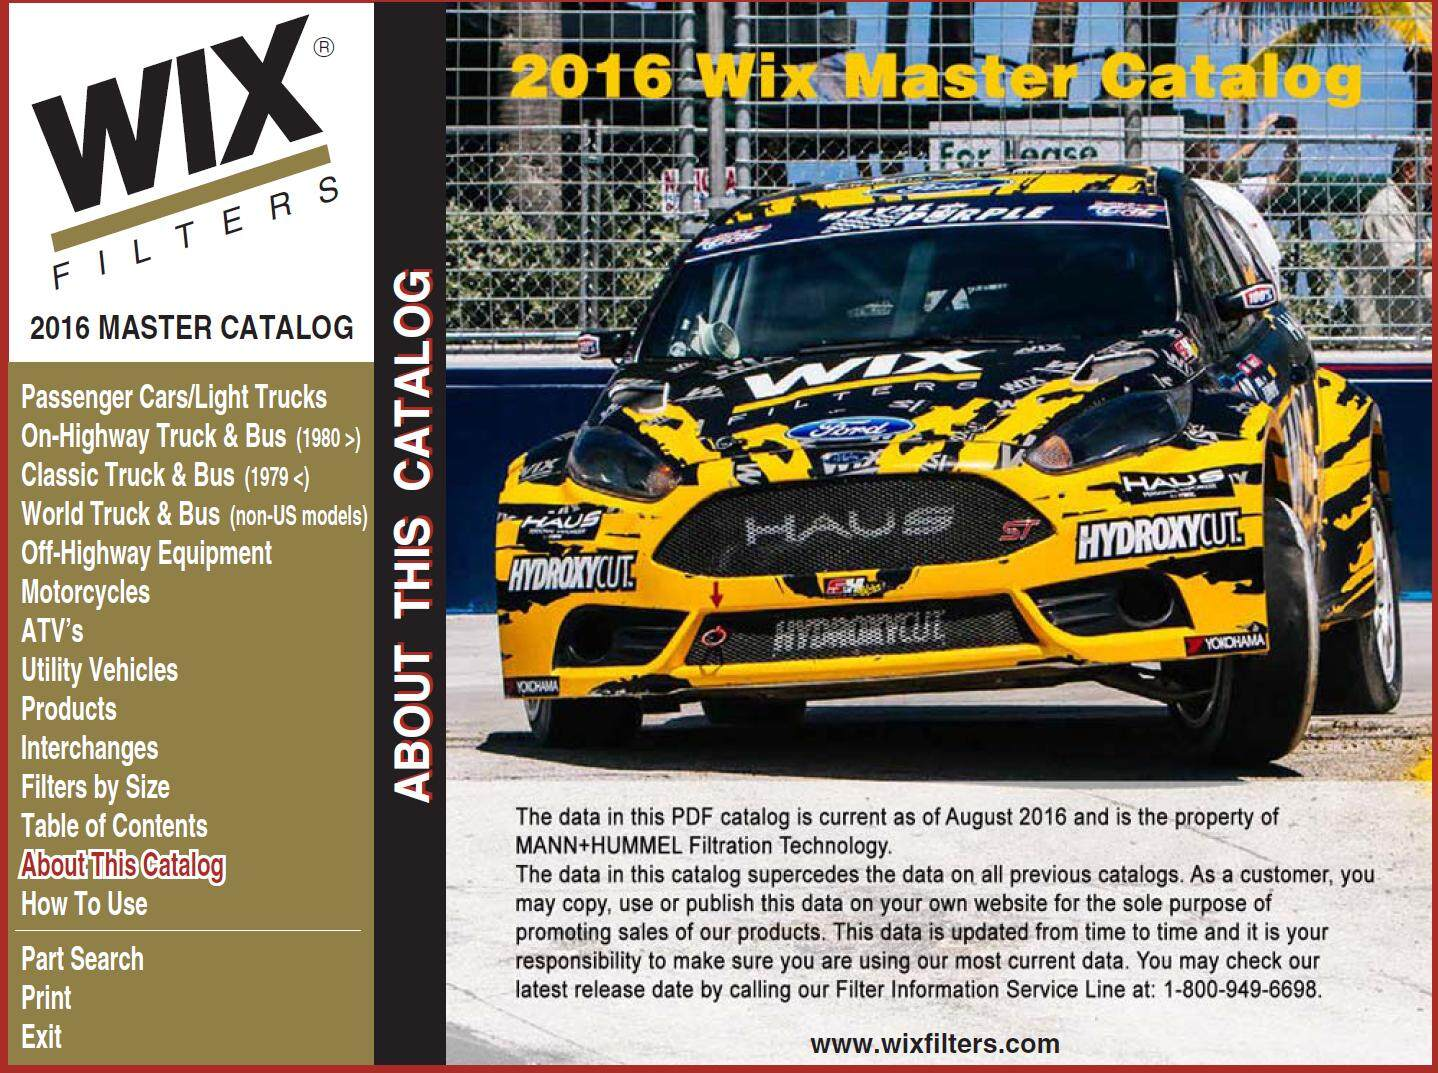 Wix Filters Master Catalog End 6 14 2019 1115 Am Racing Fuel Filter Since 1939 Has Been An Innovator In Filtration Products Designs Manufactures And Distributes For Automotive Diesel